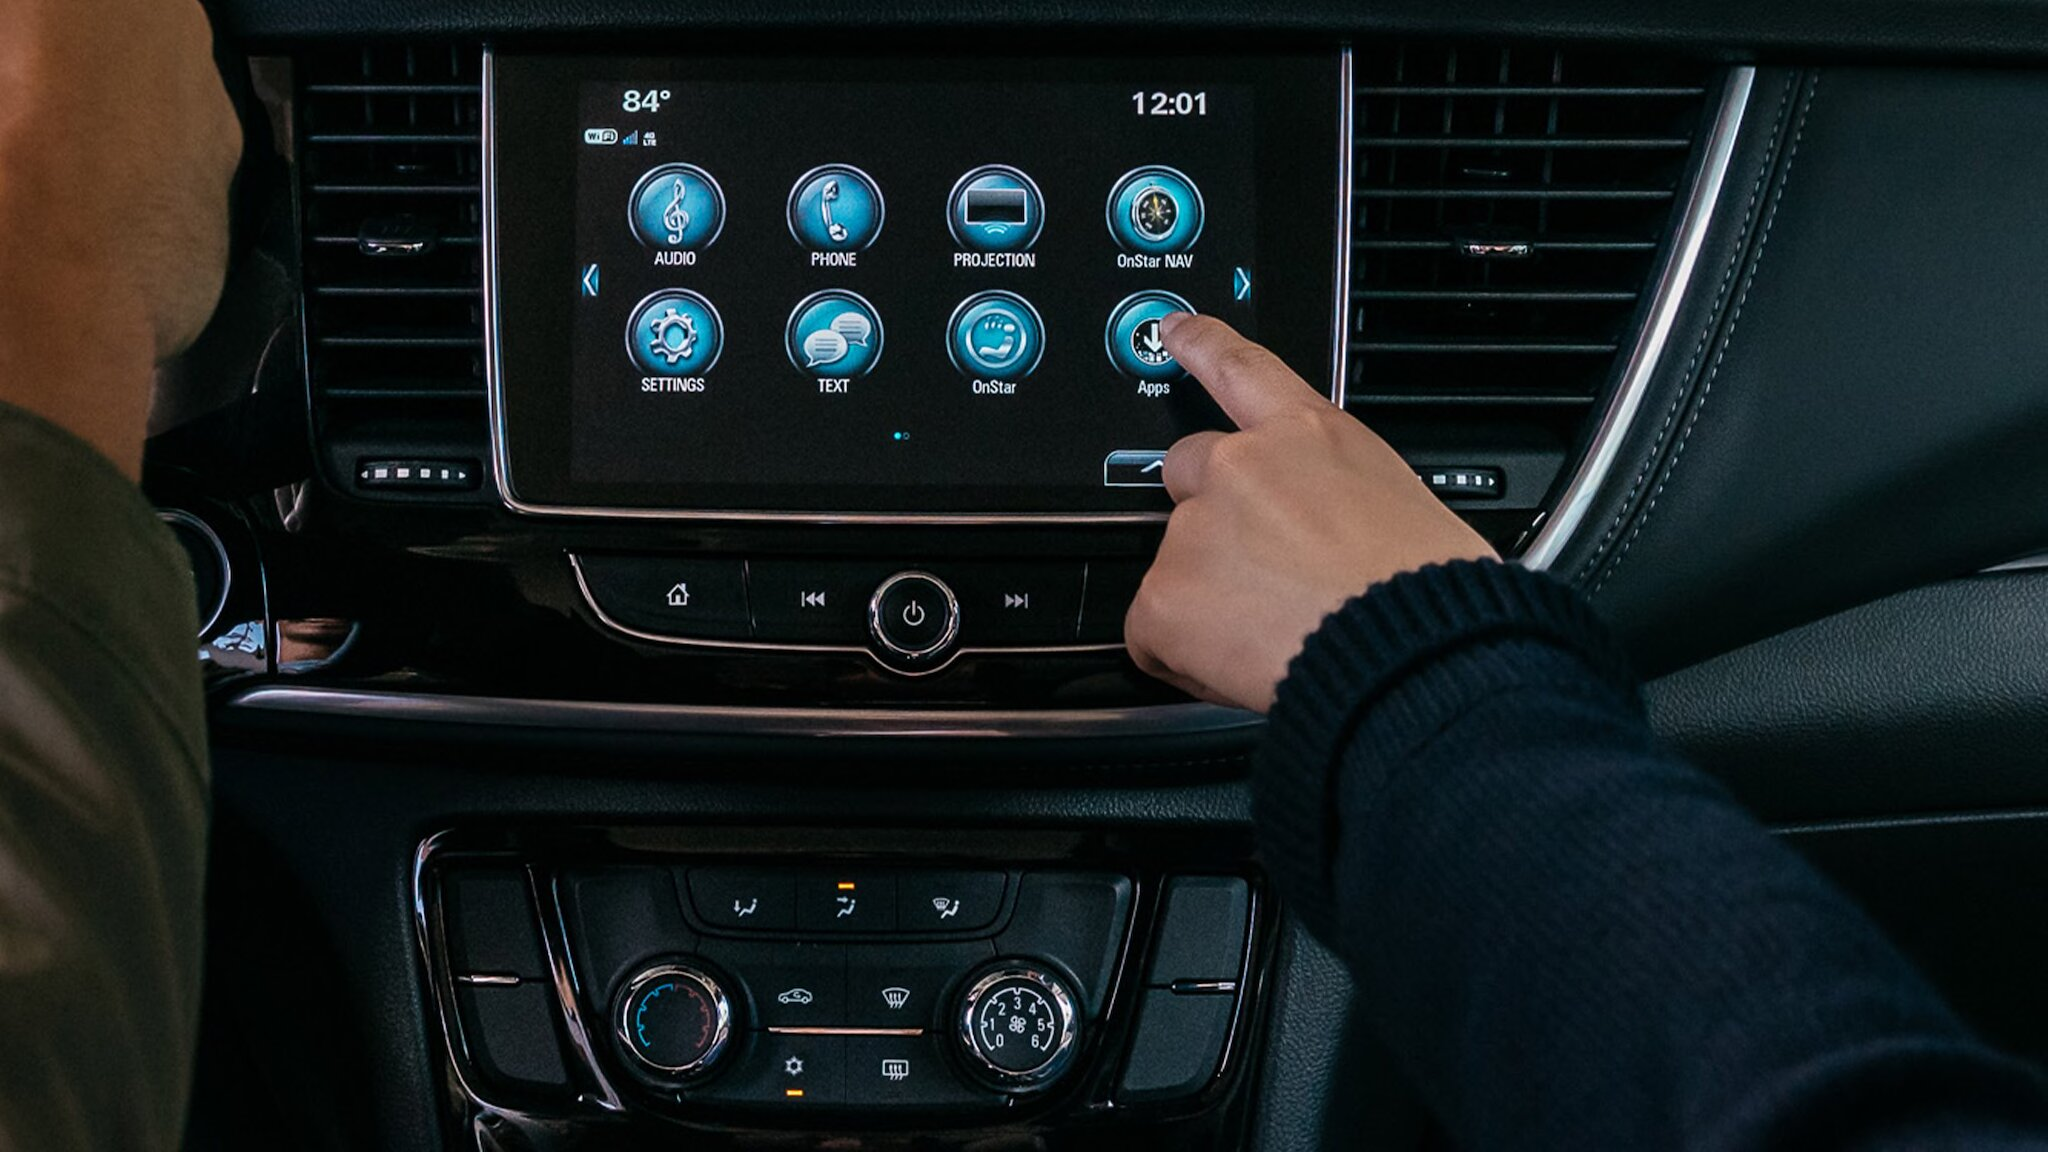 Infotainment in the 2020 Buick Encore